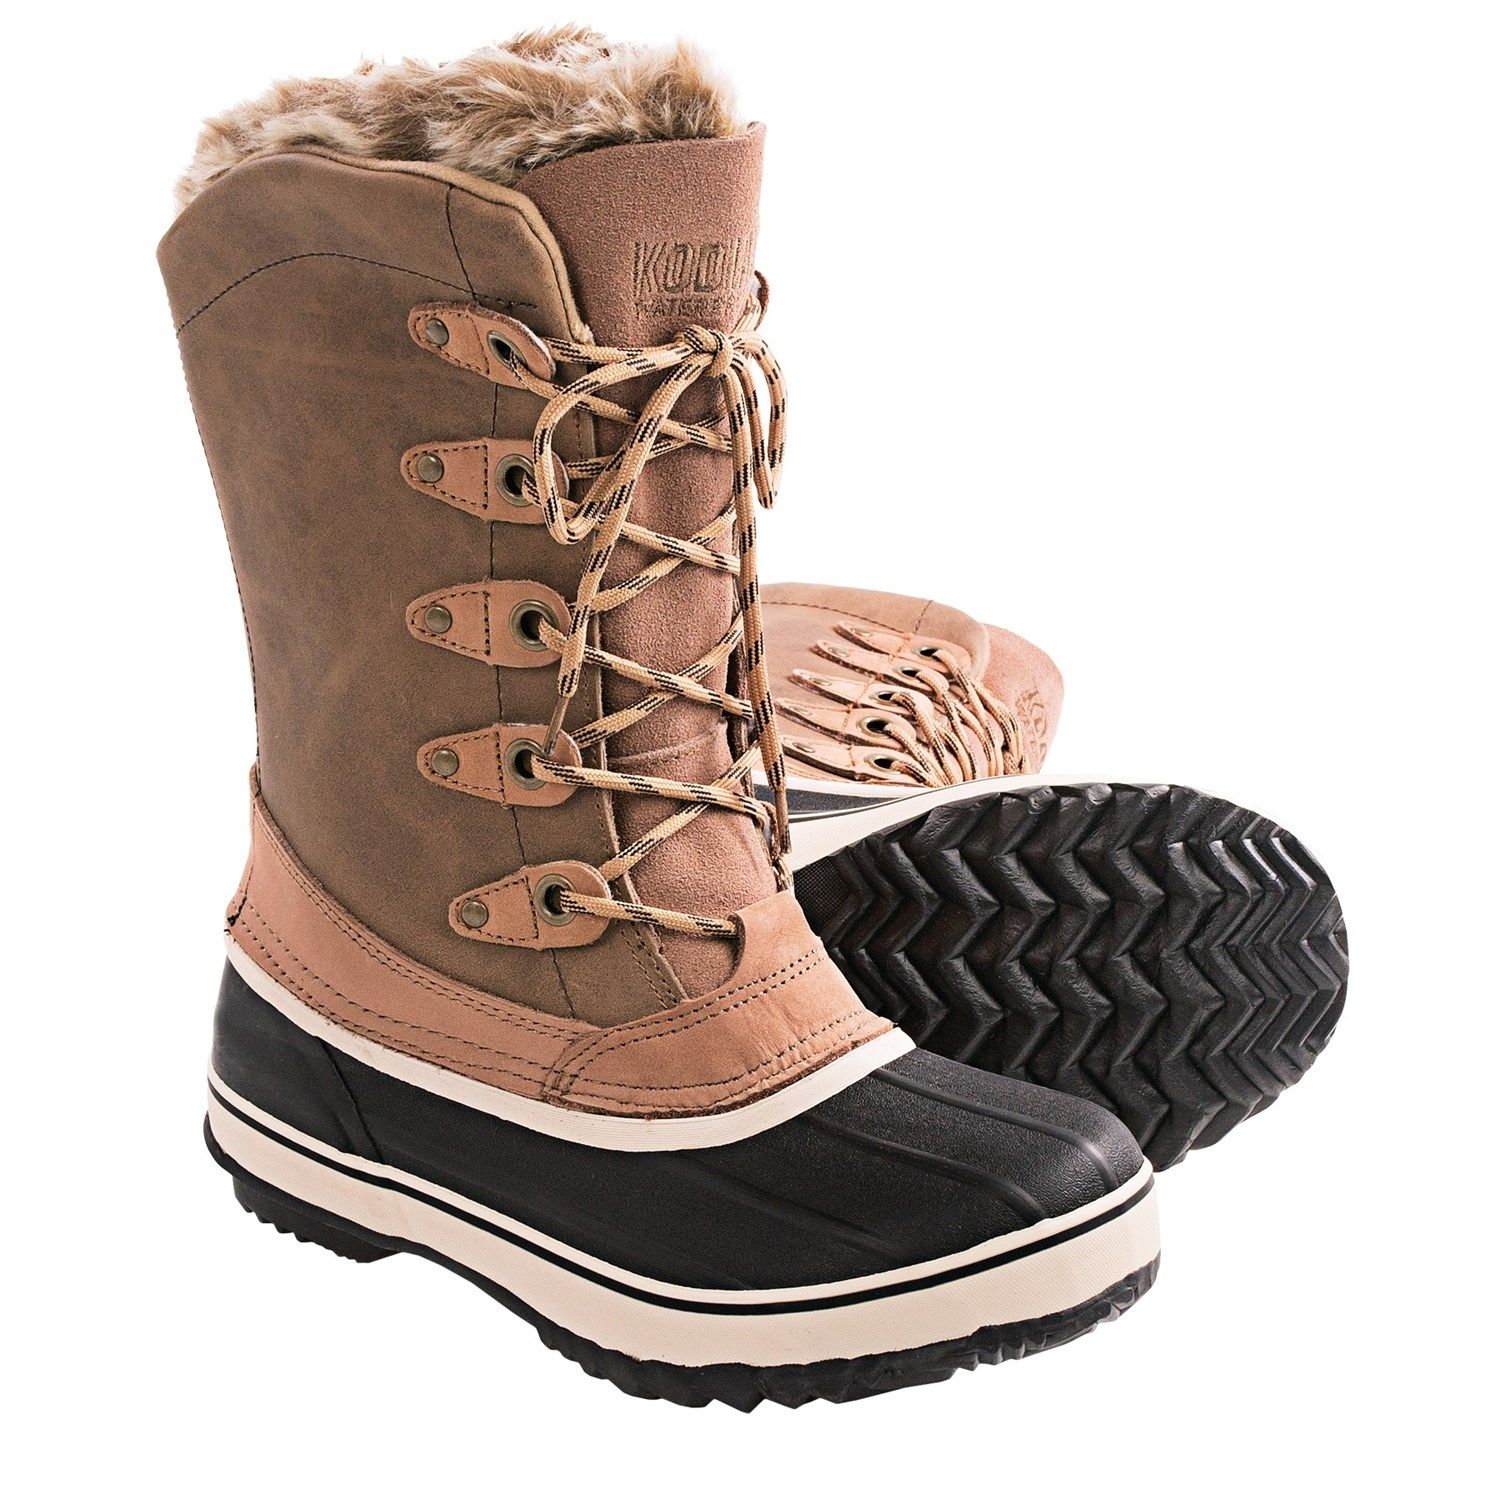 Kodiak Kyra Pac Boots - Waterproof (For Women) | Pac boots and Winter